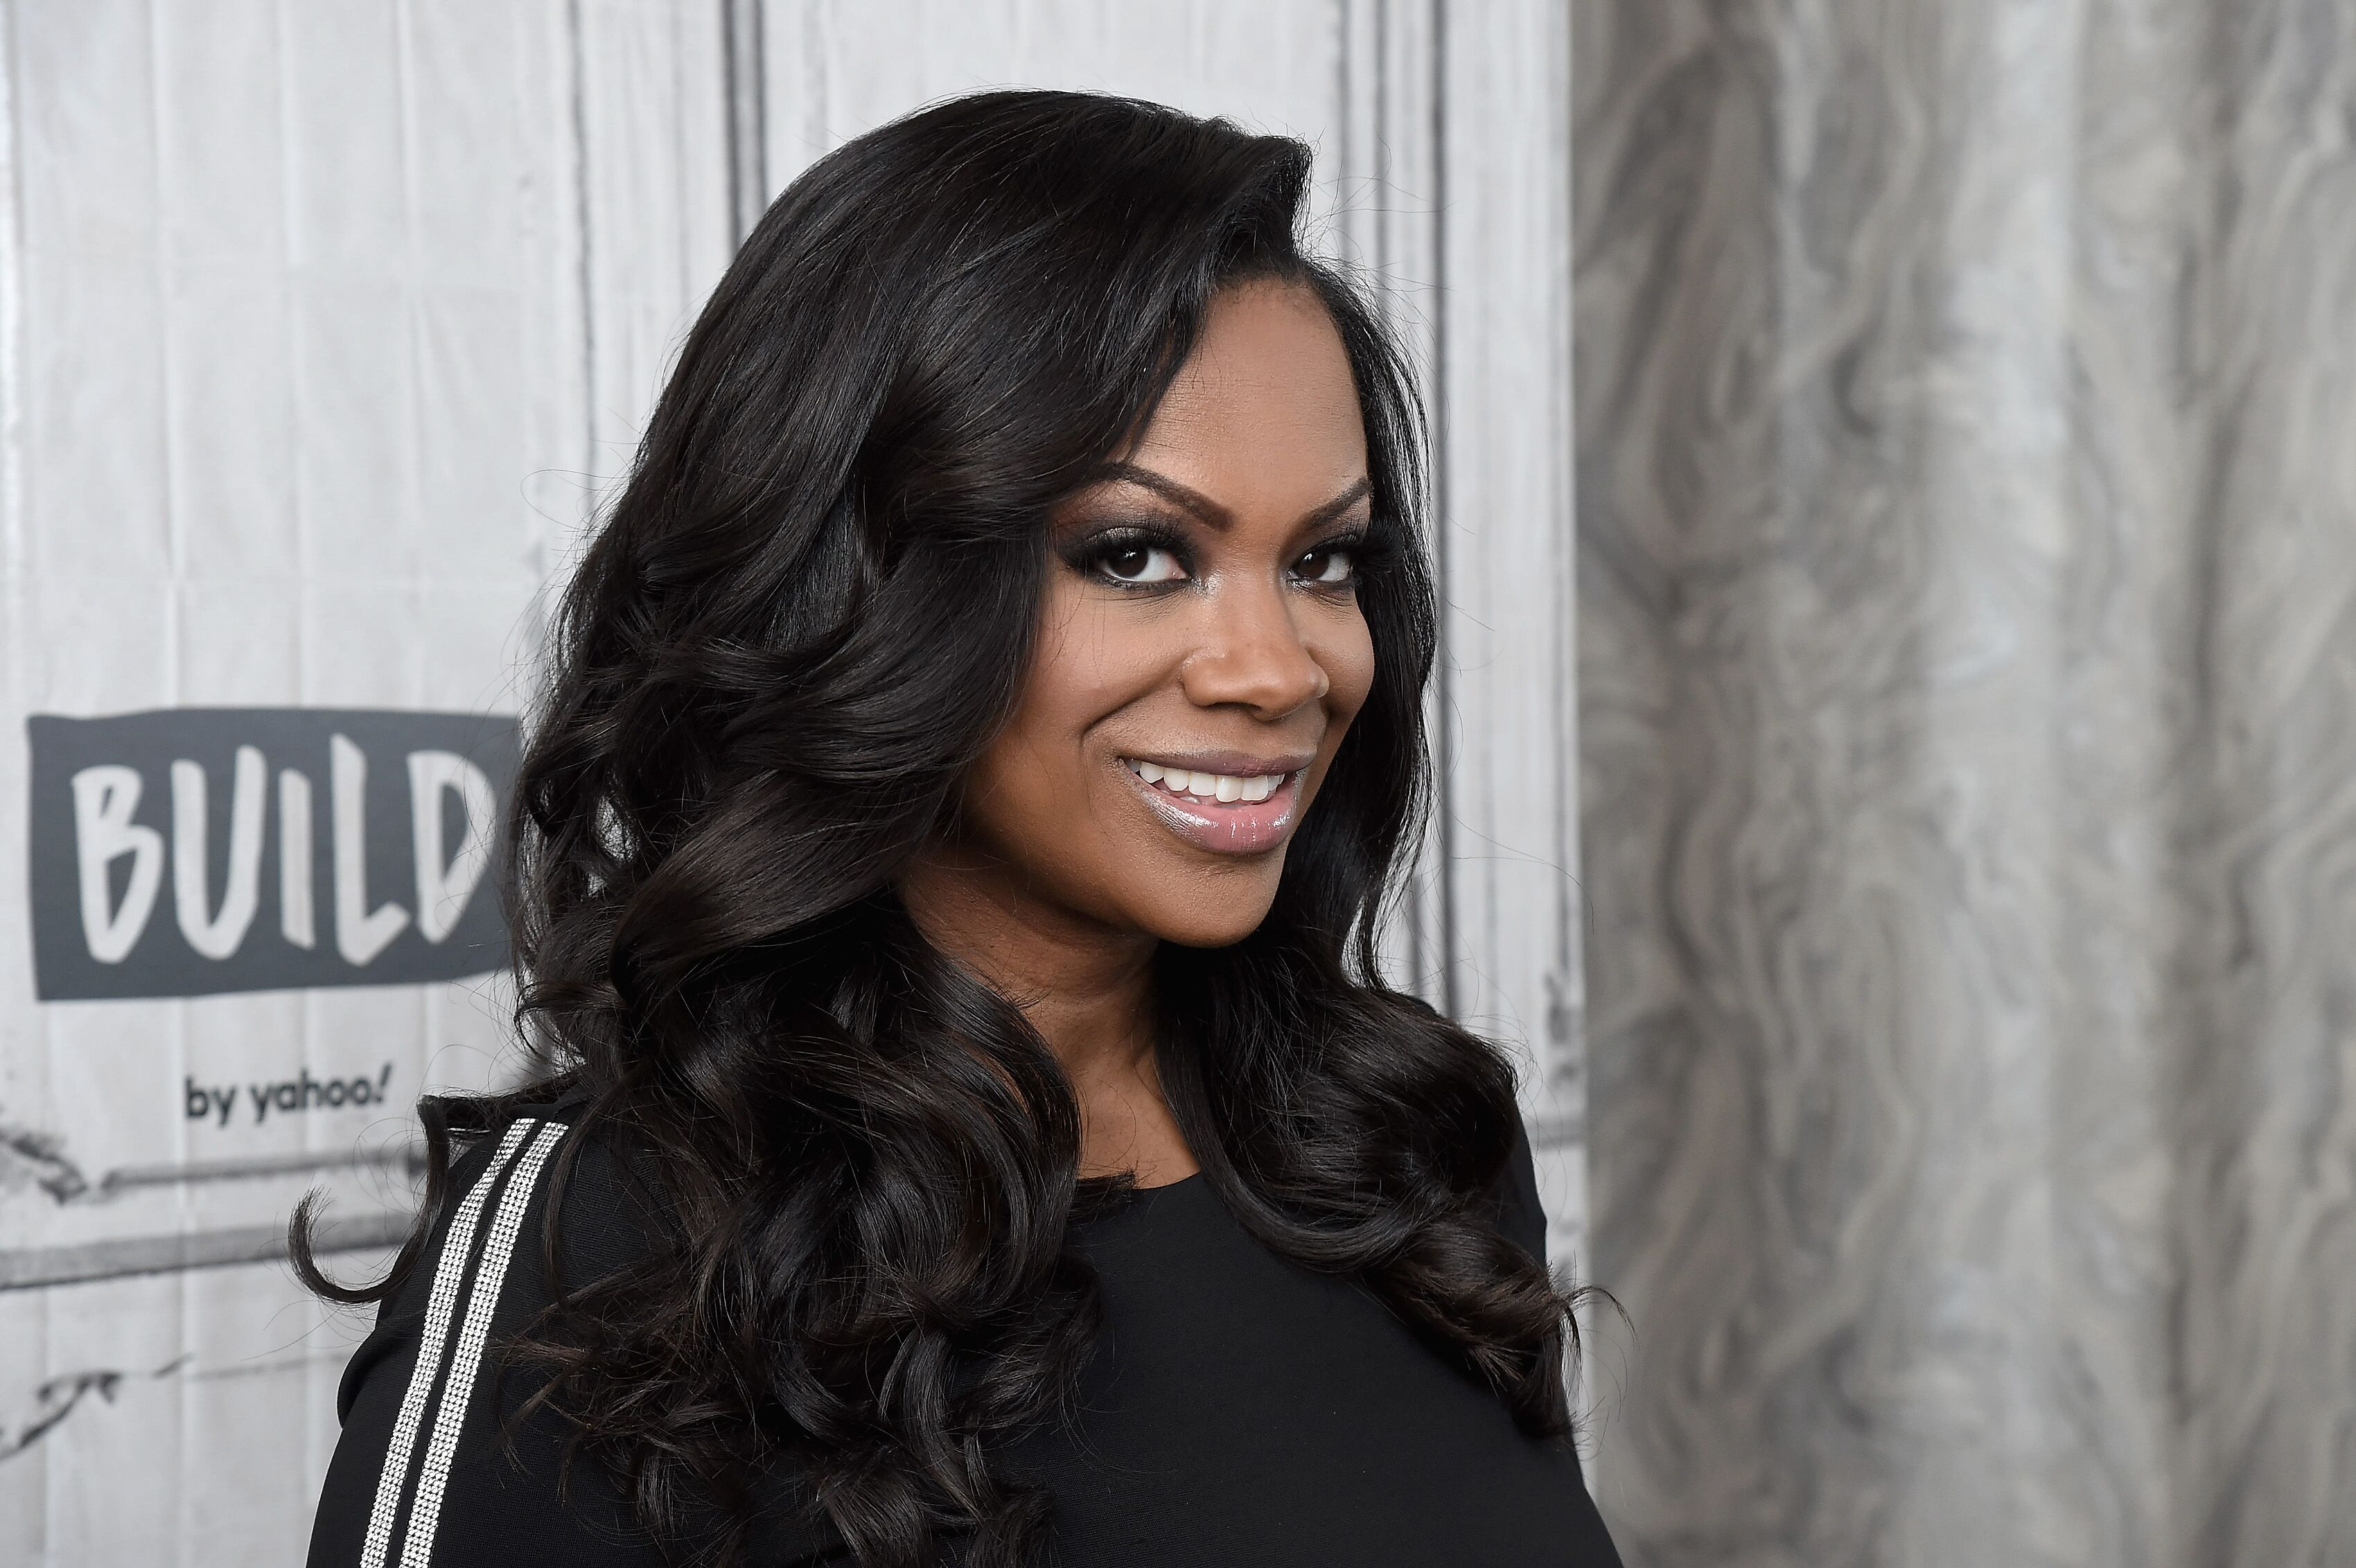 Kandi Burruss attends a Build event by Yahoo! | Source: Getty Images/GlobalImagesUkraine